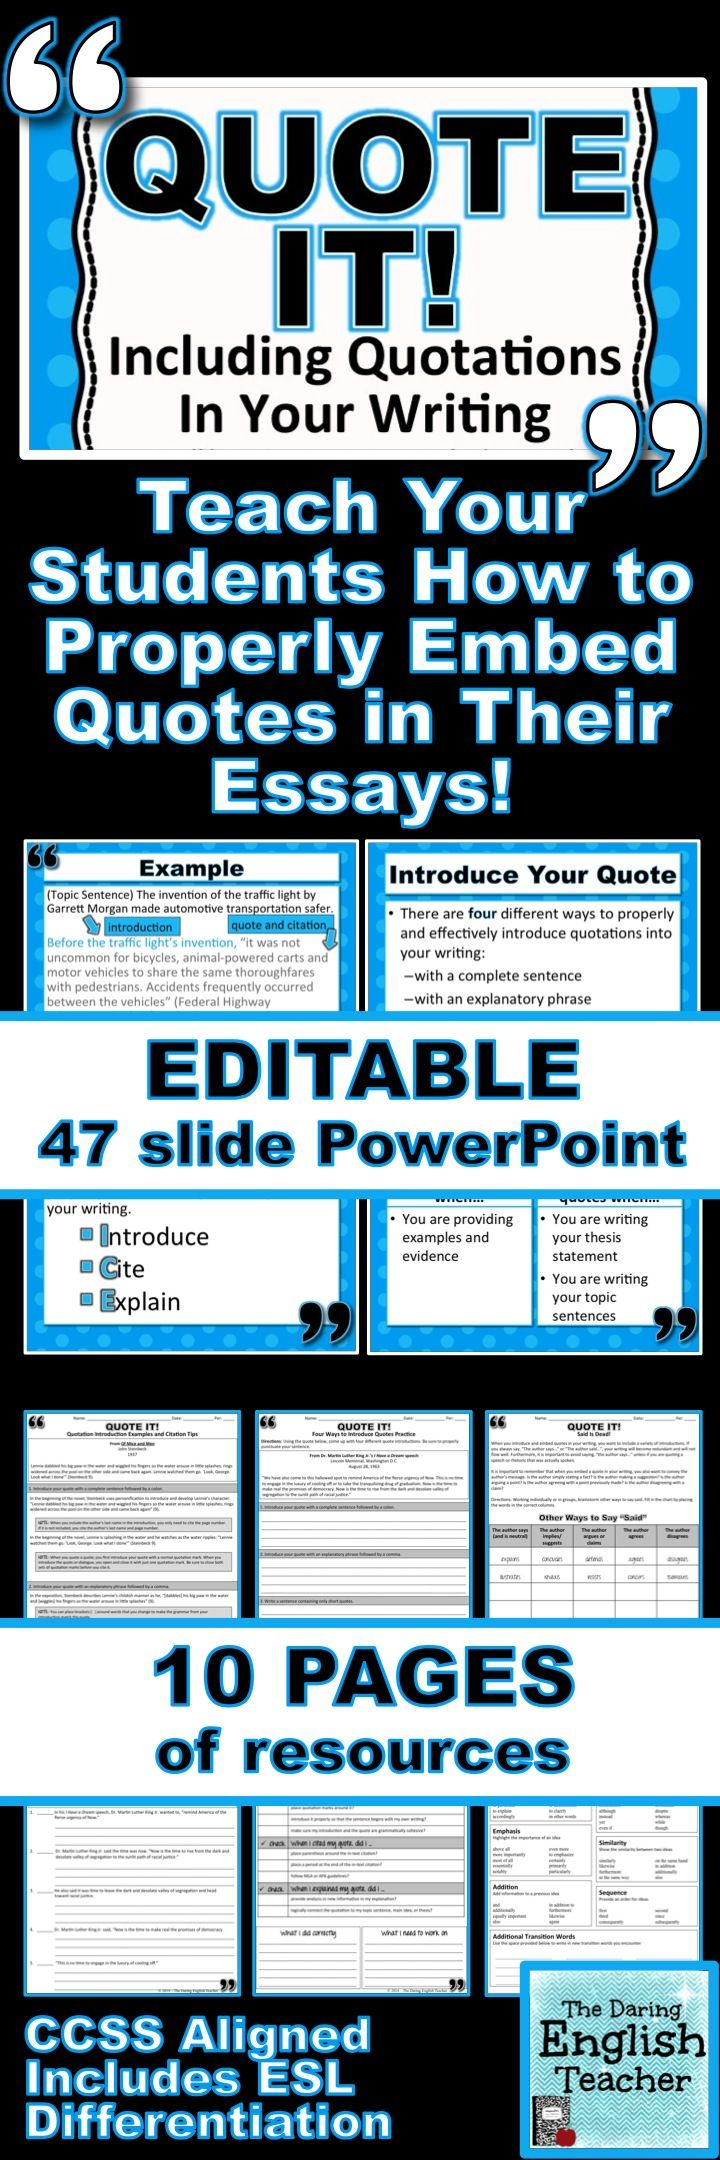 The Epic Of Gilgamesh Essay  Best Ideas About How To Write Essay English  Best Ideas About How To  Write How To Write A High School  Good Cause And Effect Essay also Internet Censorship Essay Short Essays For High School Students Top  Ideas About Short  College Life Essay